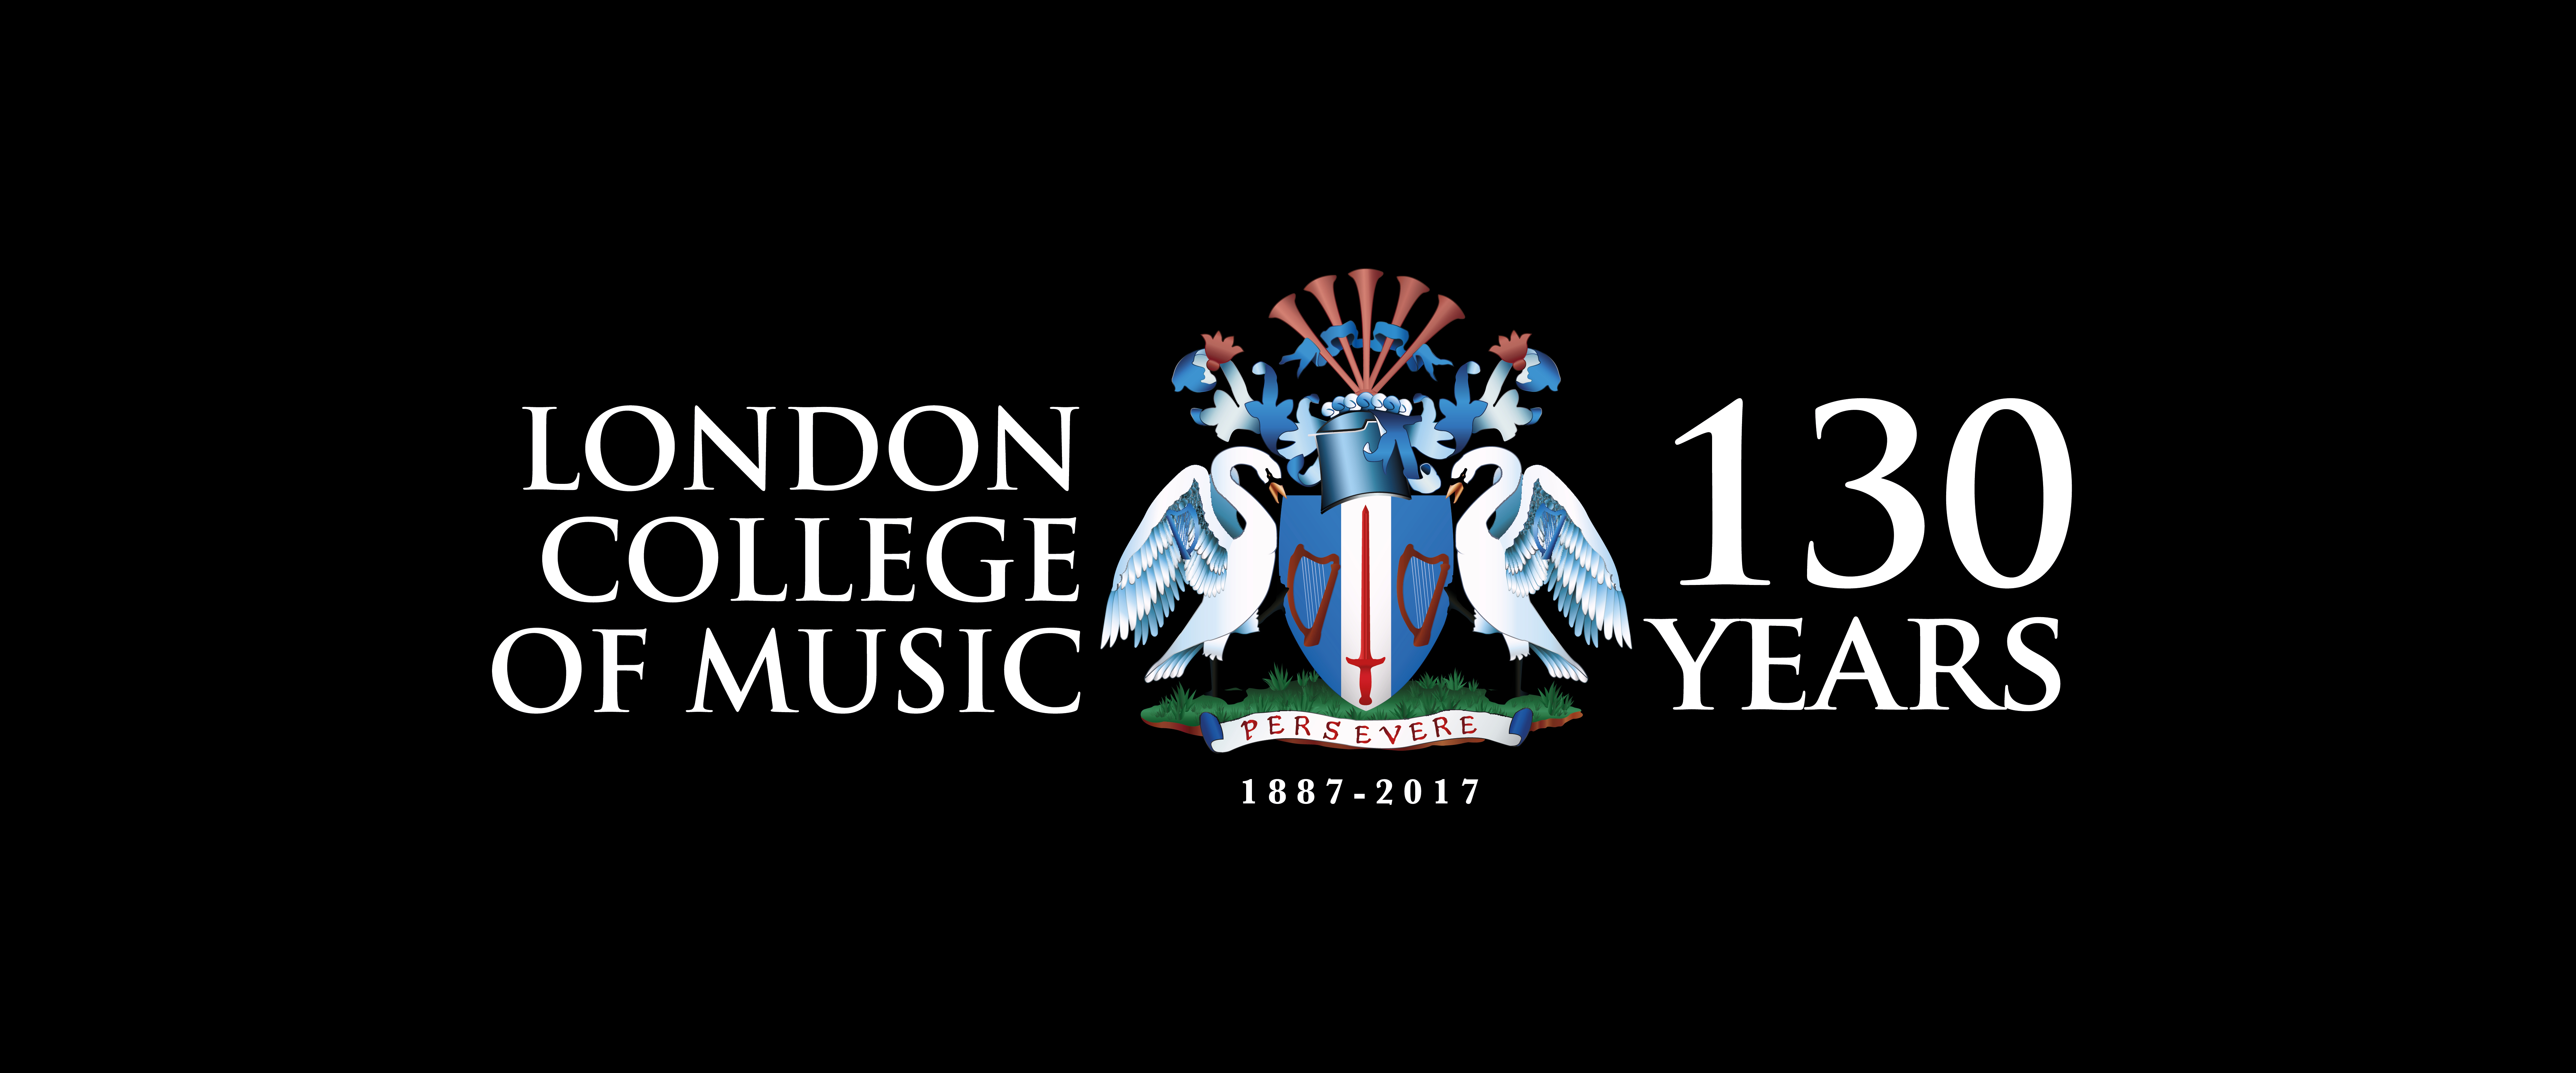 London College Of Music  Leading Music Exams & Diplomas From Lcm  University Of West London. Ways To Pay For College Checking Account Banks. Autoimmune Rheumatoid Arthritis. Credit Cards That Earn Cash Back. Make A Bank Account Online For Free. Post Traumatic Stress Disorder Treatment Centers. Community Colleges In Nashville Tn Area. Marshall Online Courses Avant Salon Austin Tx. Iupui Clinical Psychology Florida Credit Card